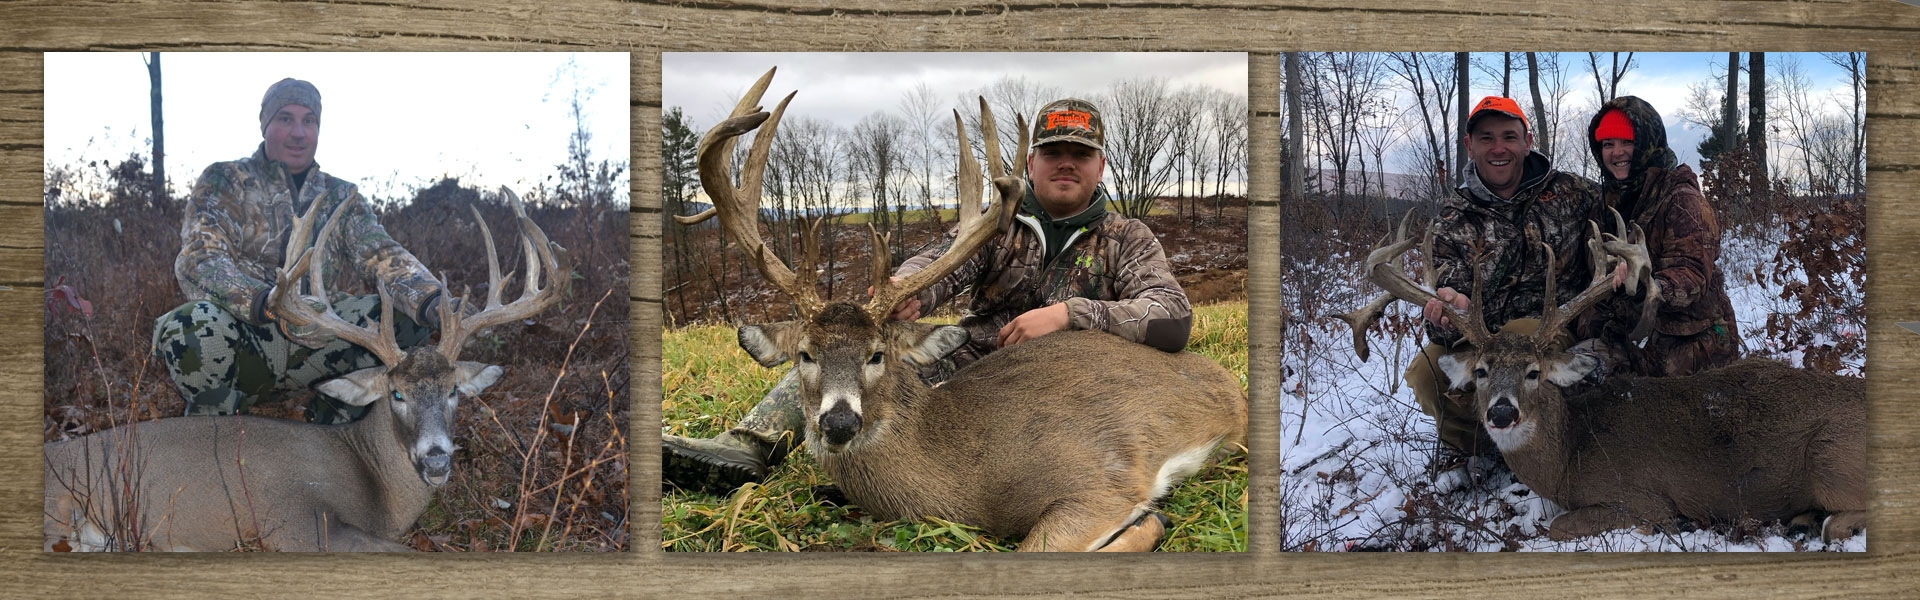 Trophy Whitetail Deer Hunting in Pennsylvania on Private Land